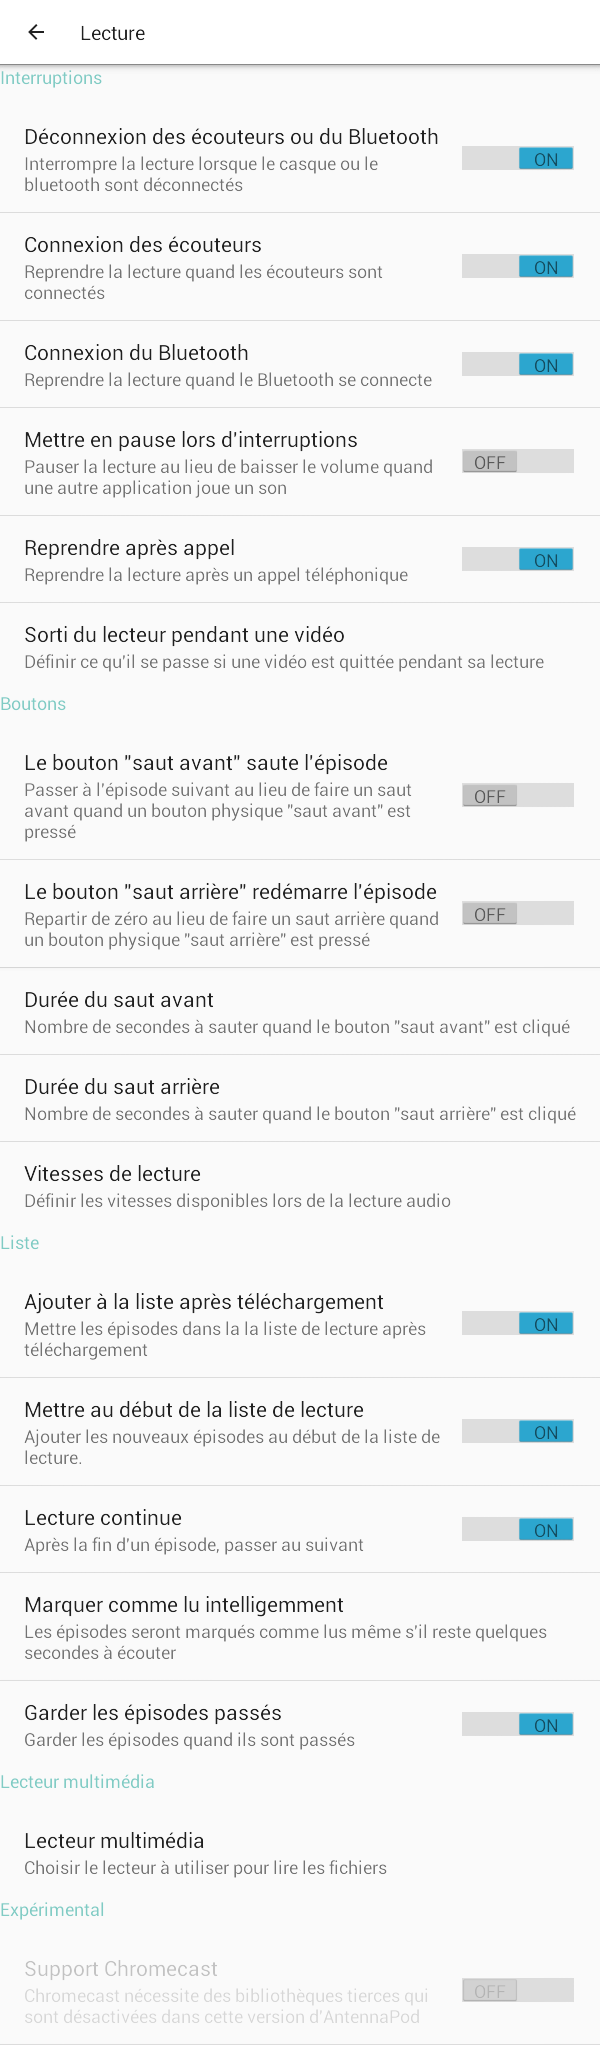 AntennaPod - Sous-menu Lecture de l'application antennaPod (Crédit : wiki.ordi49.fr sous licence Creative Commons BY 4.0)